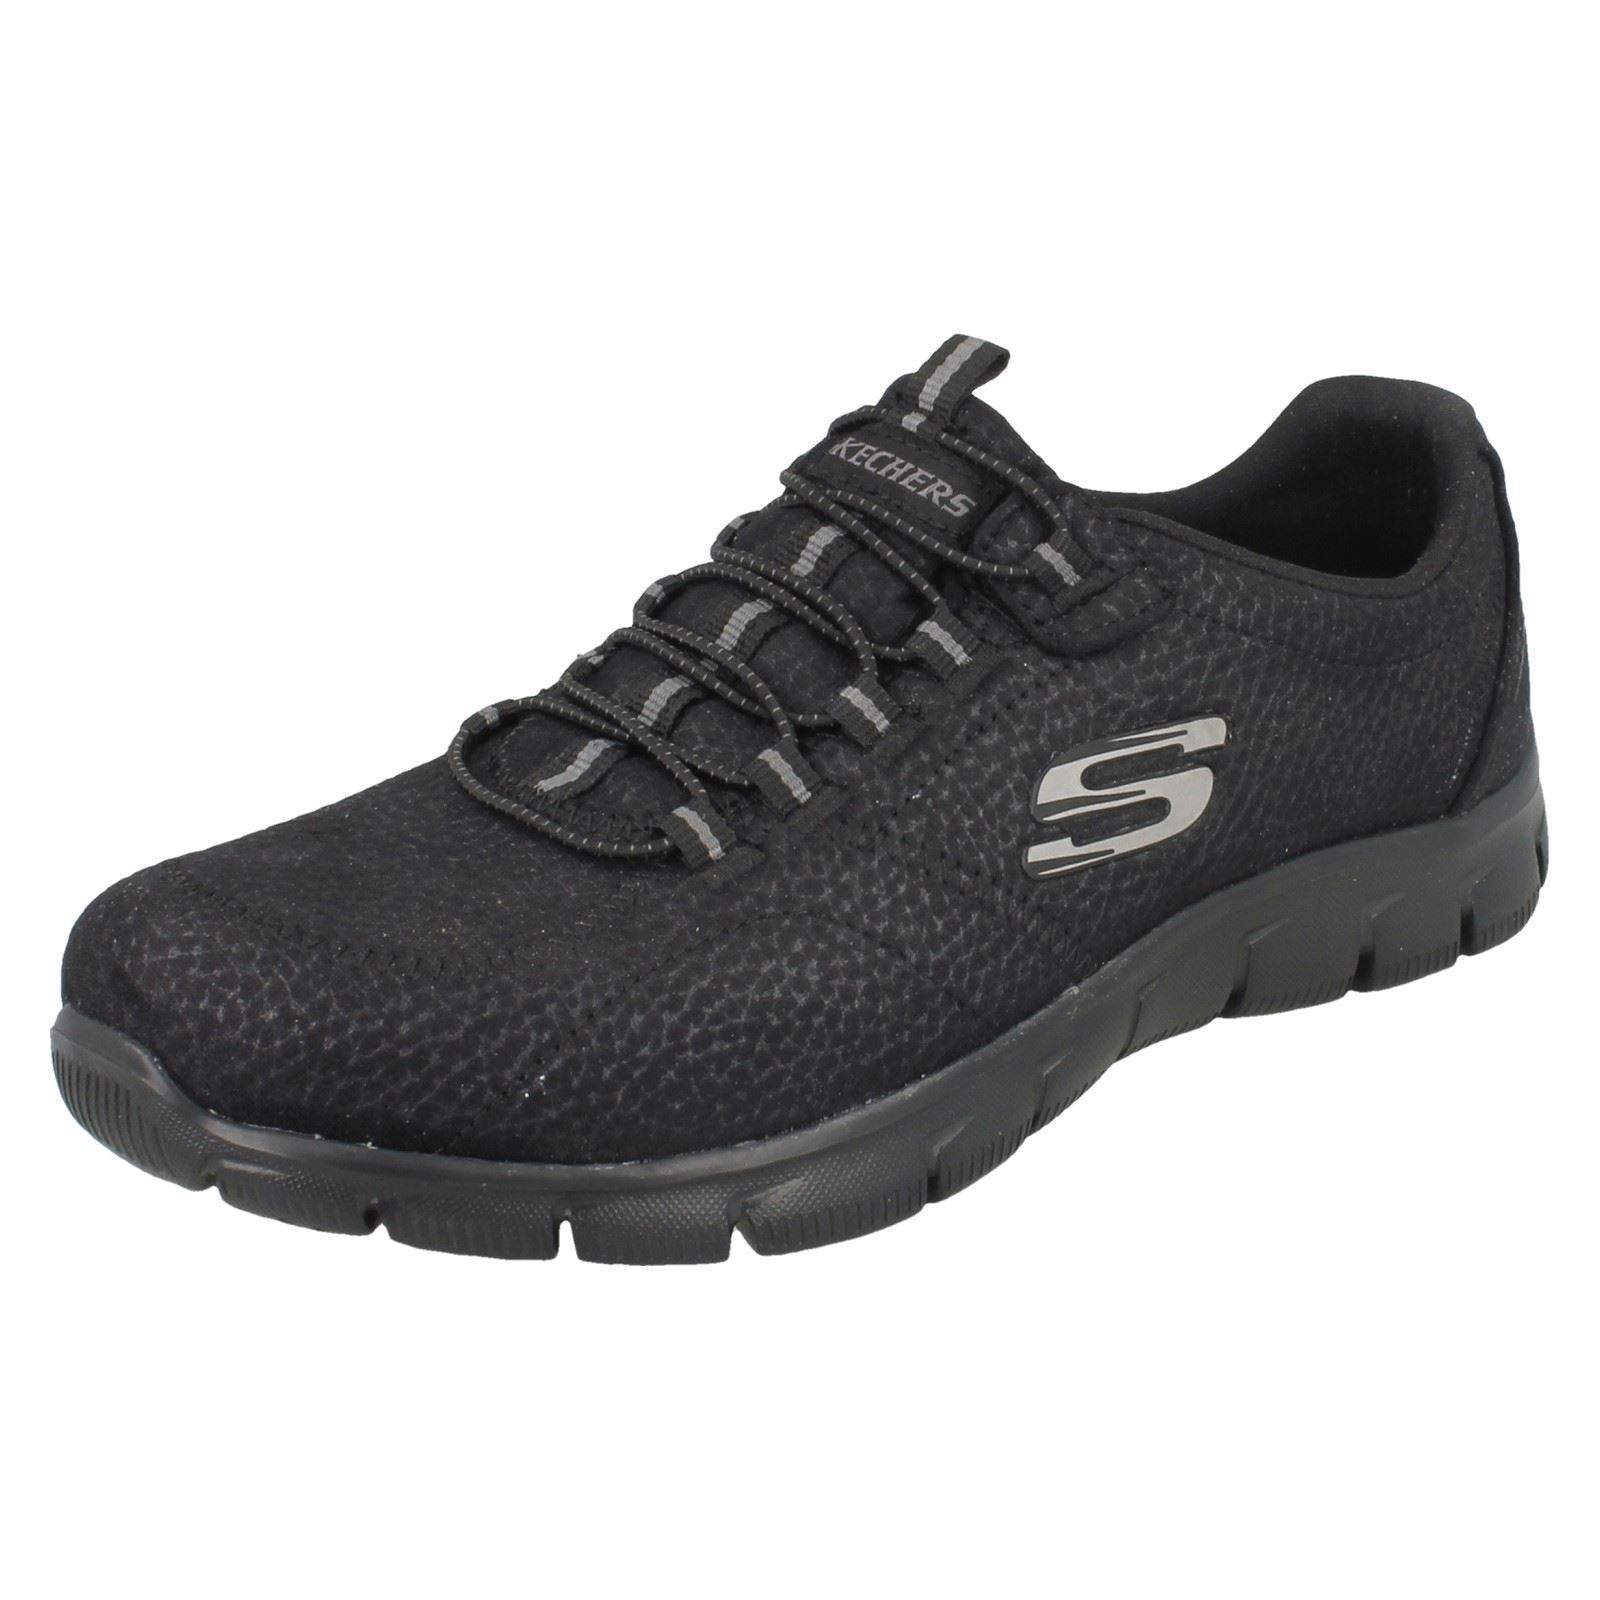 Skechers Ladies Casual Trainers 'Take Charge' 12407